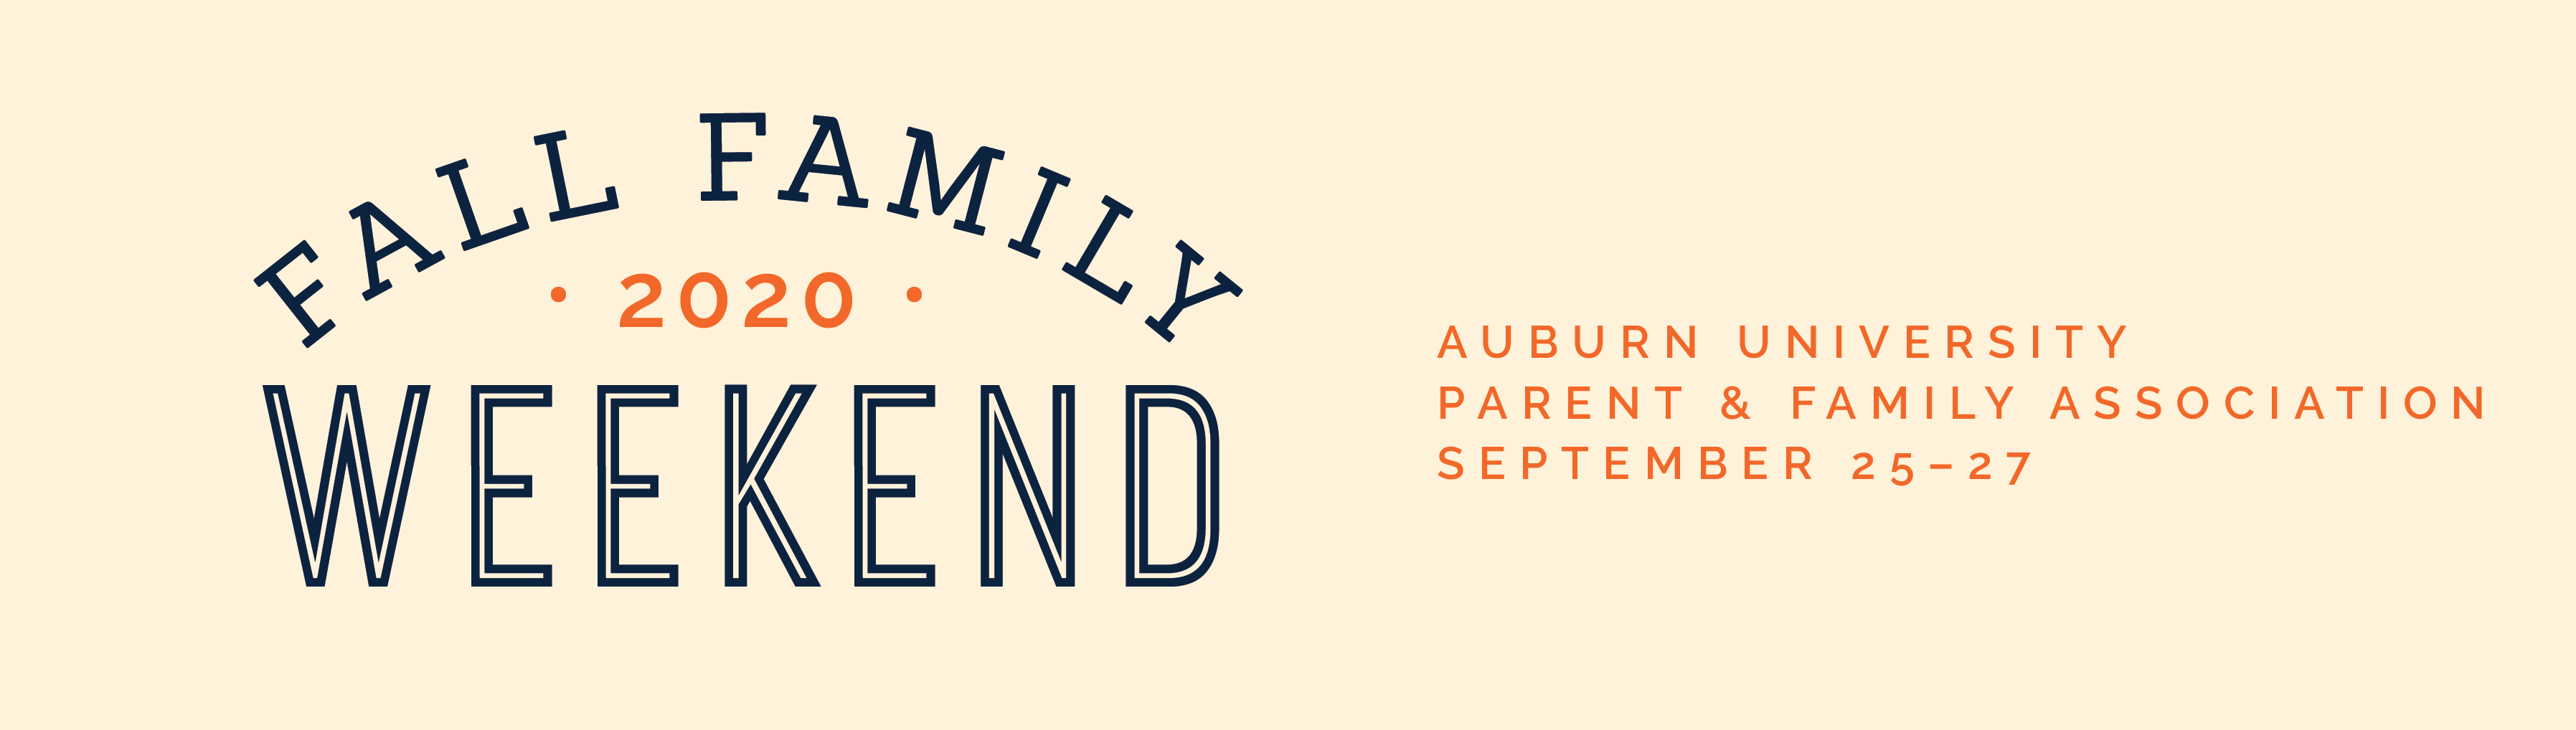 Fall Family Weekend 2020